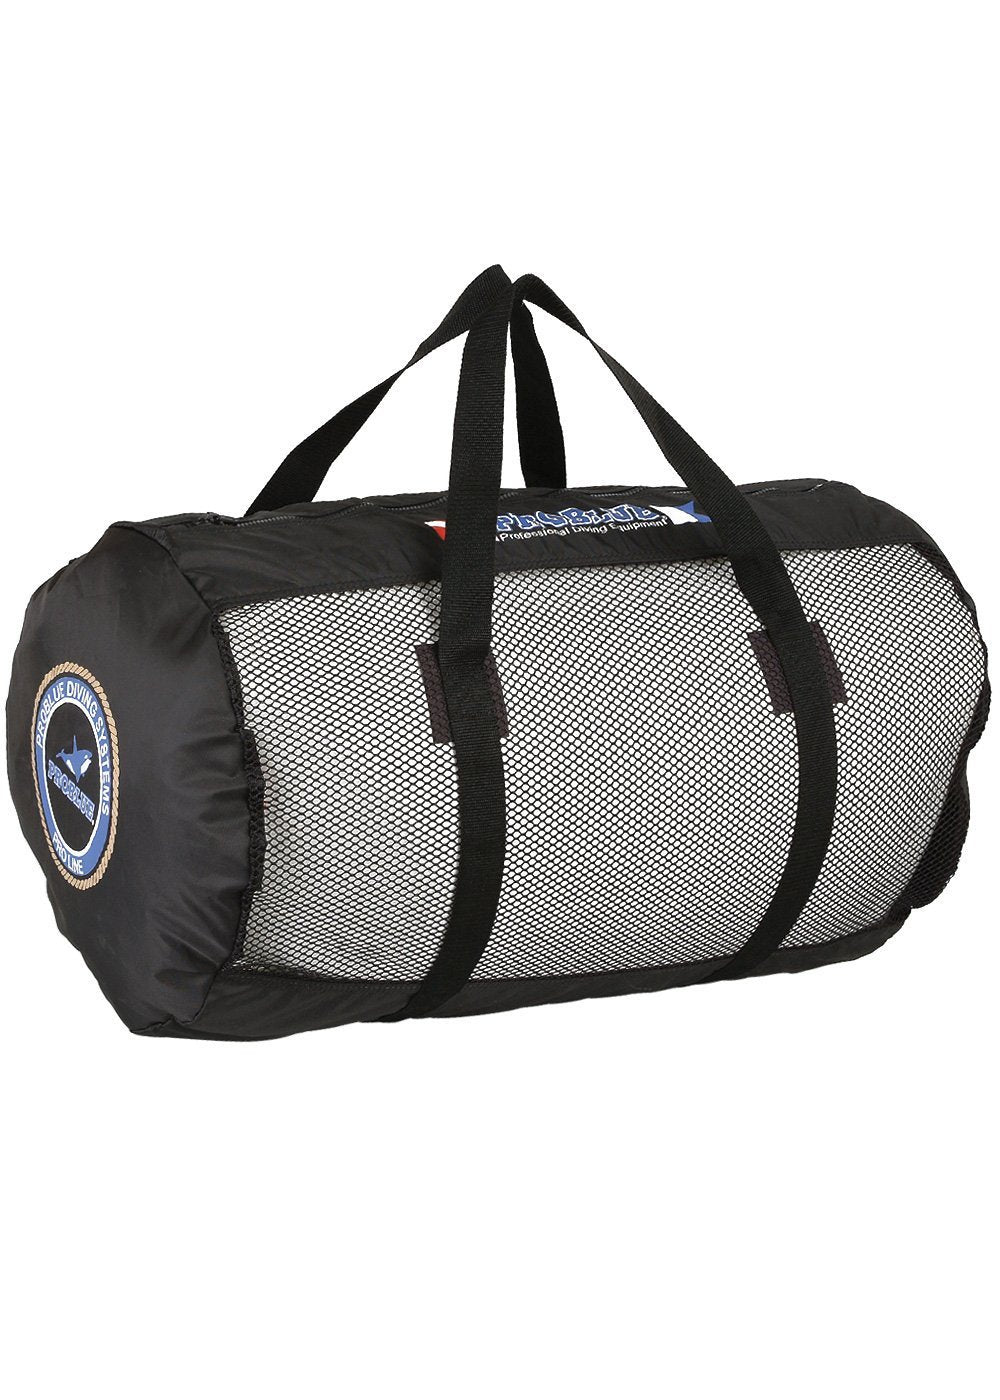 Problue Foldable Mesh Gear Bag